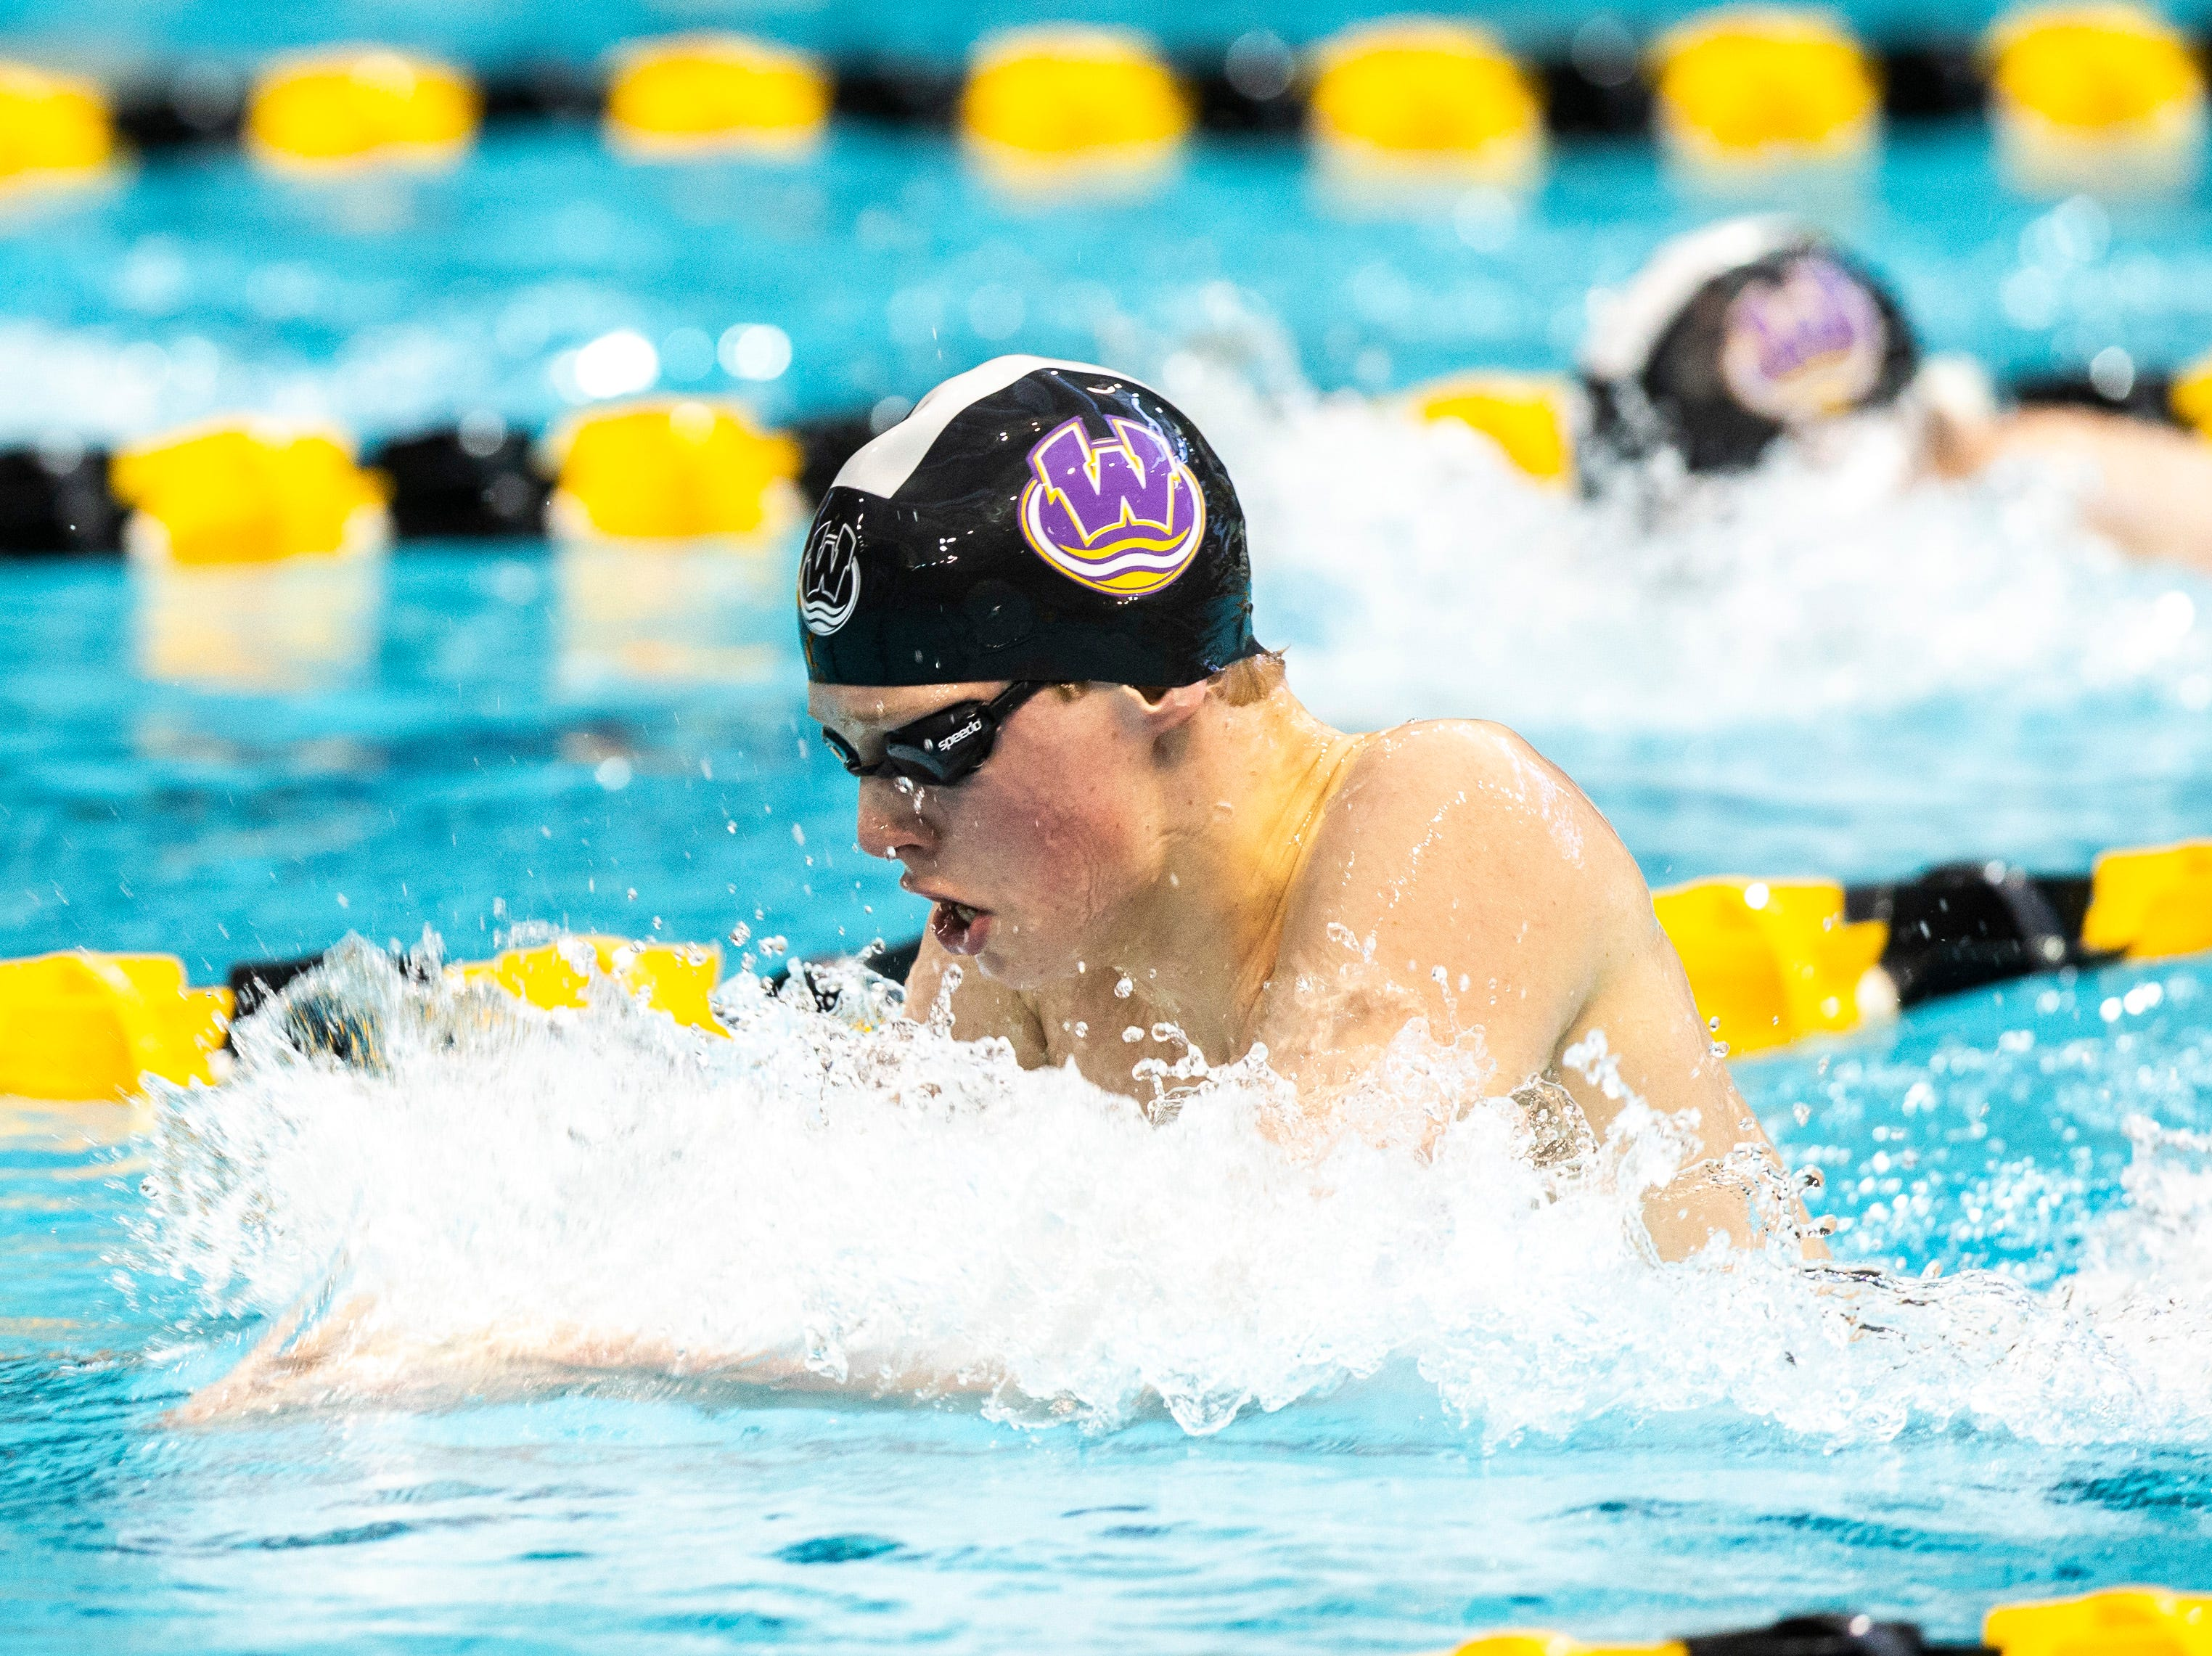 Waukee junior Cameron Linder competes during the 200 yard individual medley third heat during the Iowa boys' state swimming regional championship meet on Saturday, Feb. 9, 2019 at Campus Recreation and Wellness Center on the University of Iowa campus in Iowa City, Iowa. Linder finished first, with a time of 1:51.11.